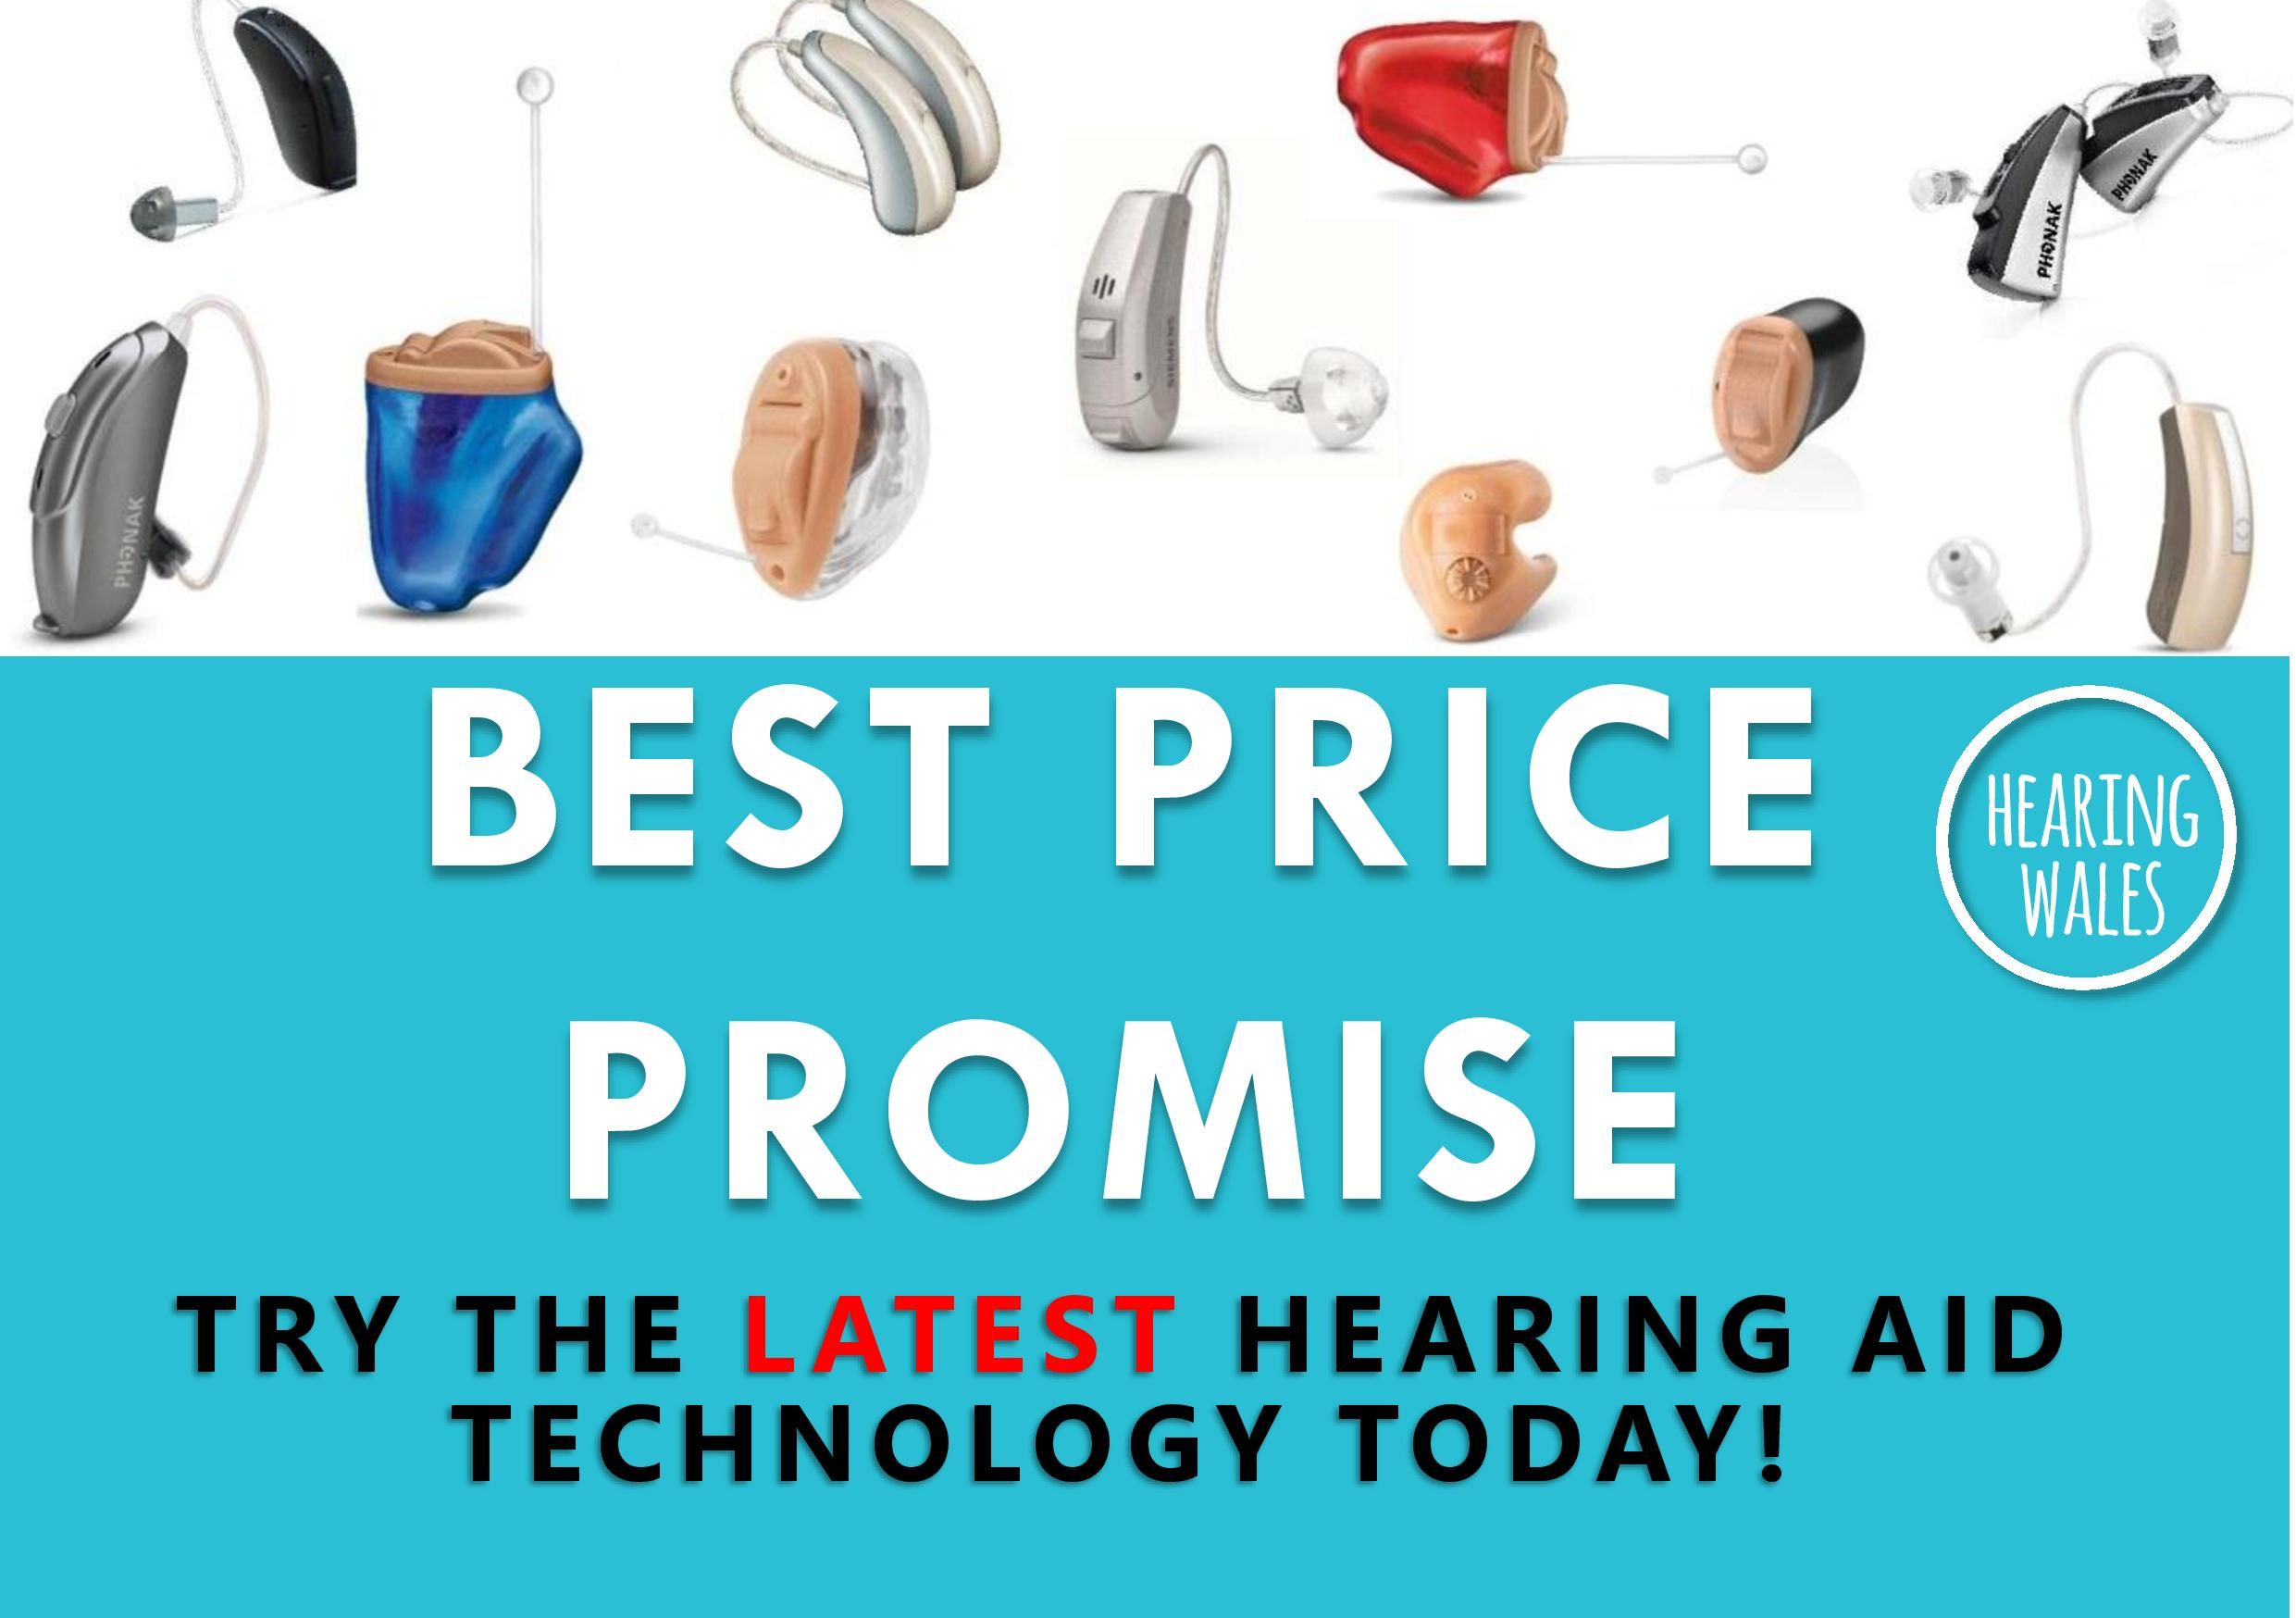 hearing-wales-hearing-aid-special-offer-price-promise